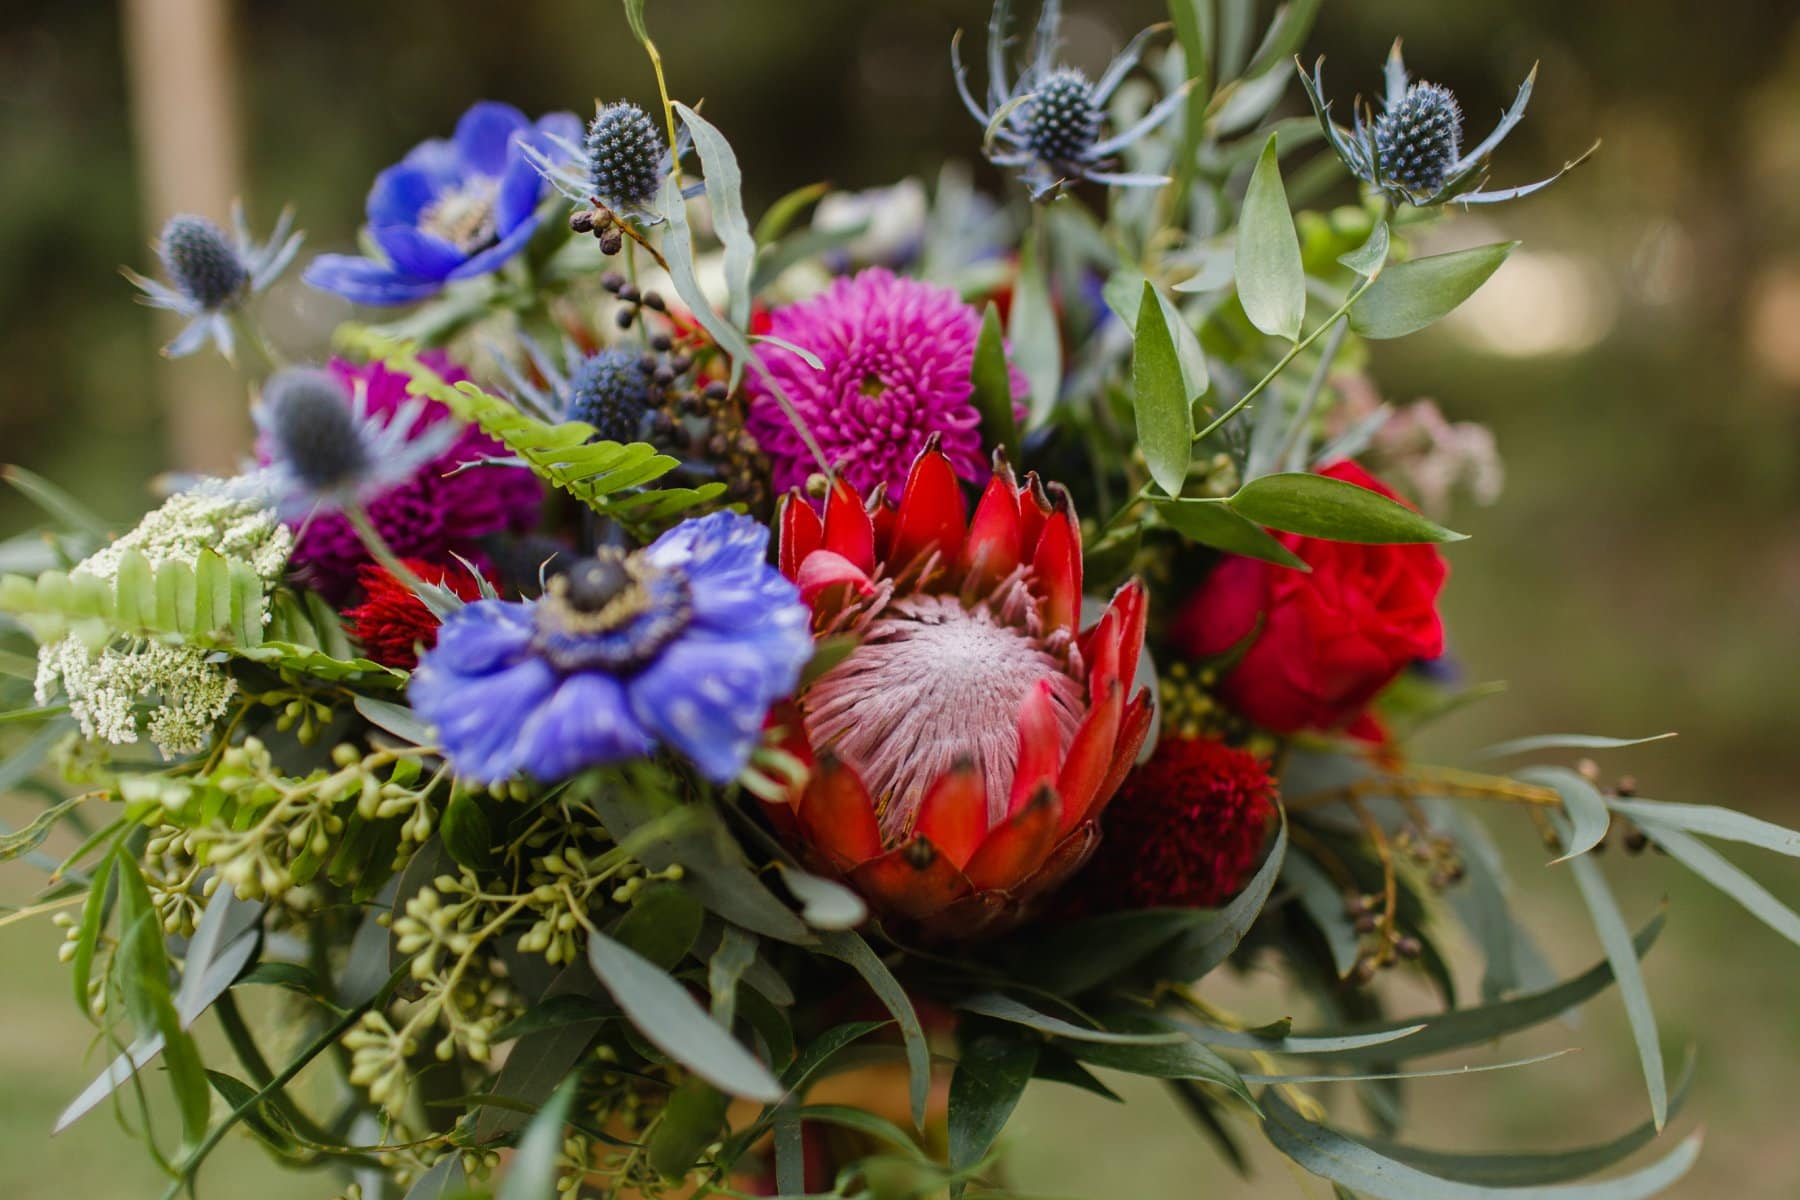 Hoot & Holler florals with red protea